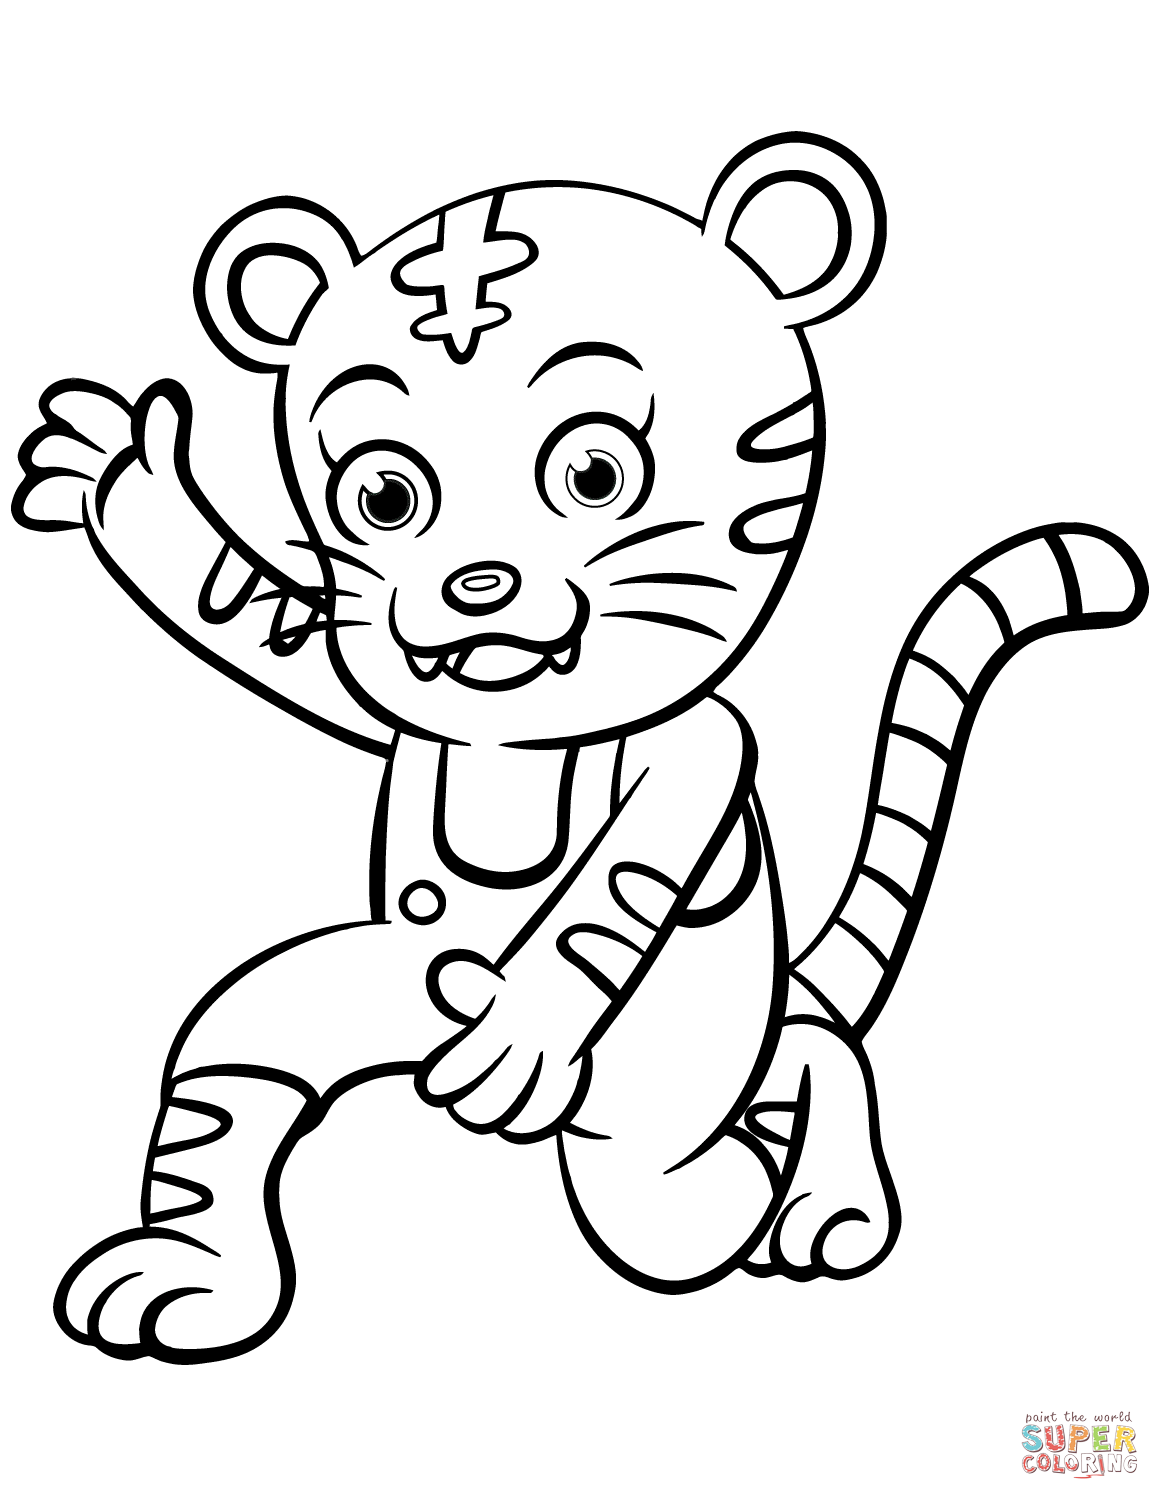 tiger pictures to colour tigers free to color for kids tigers kids coloring pages pictures to tiger colour